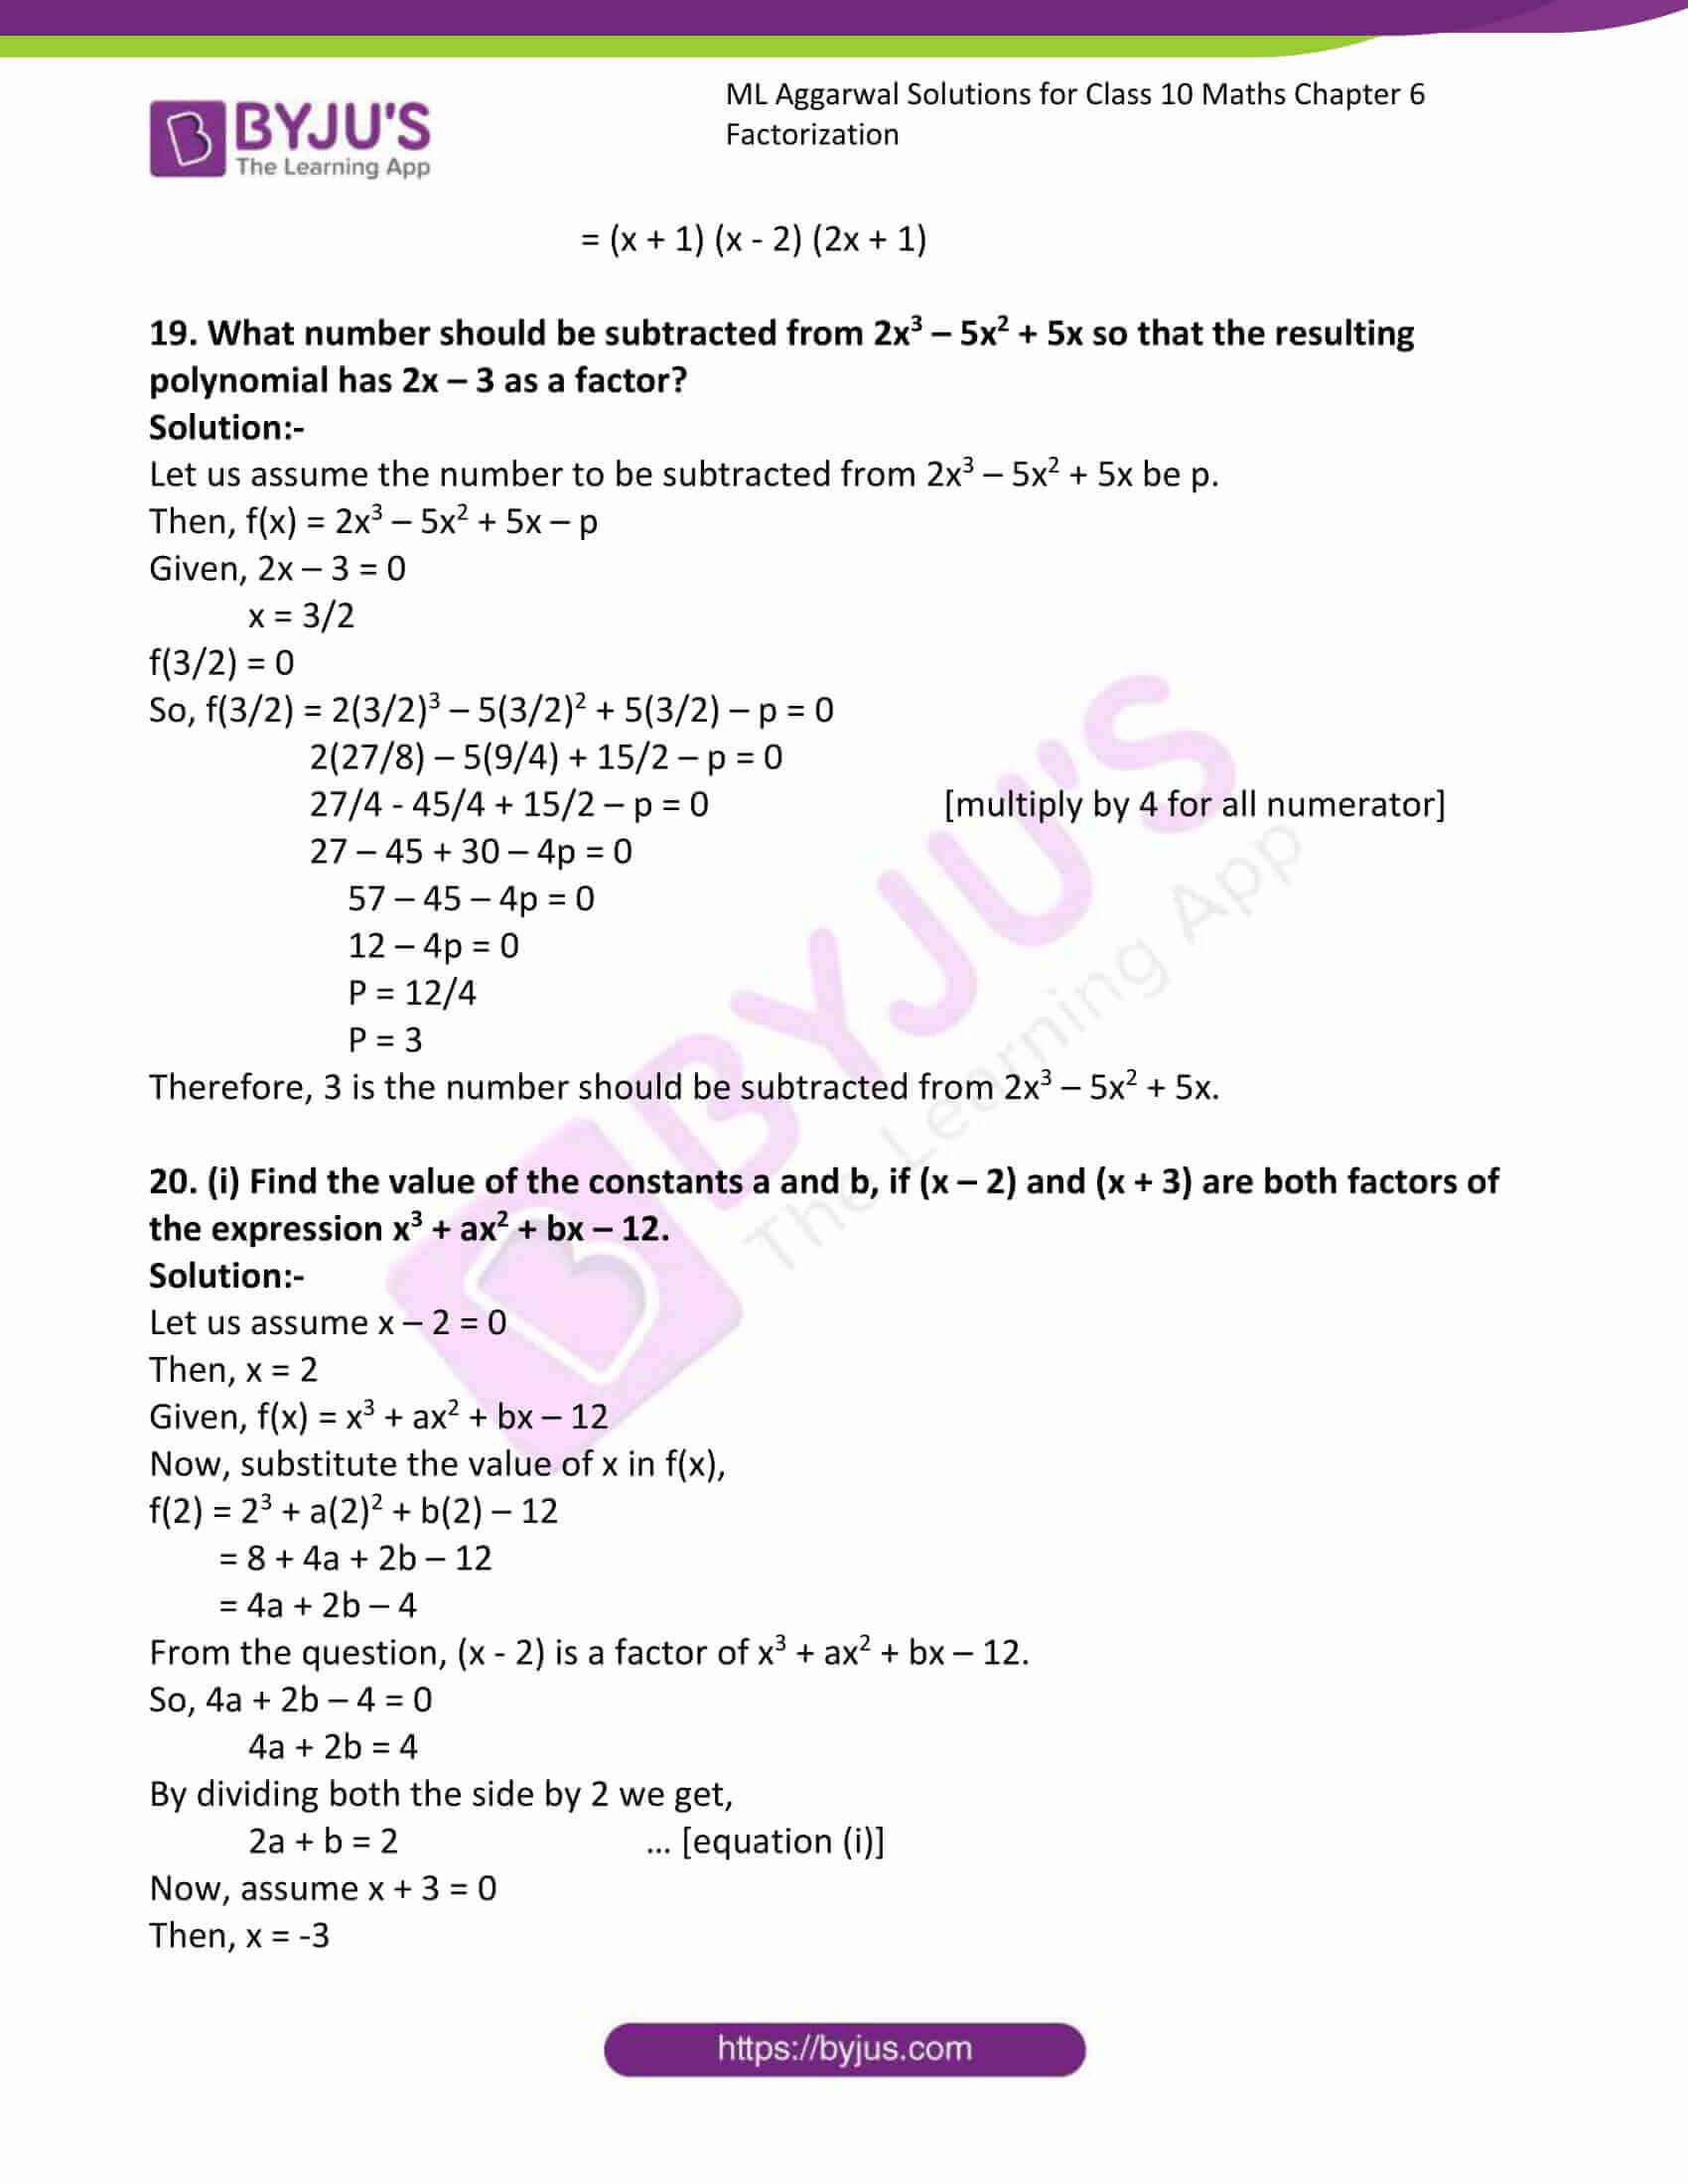 ml aggarwal solutions class 10 maths chapter 6 19